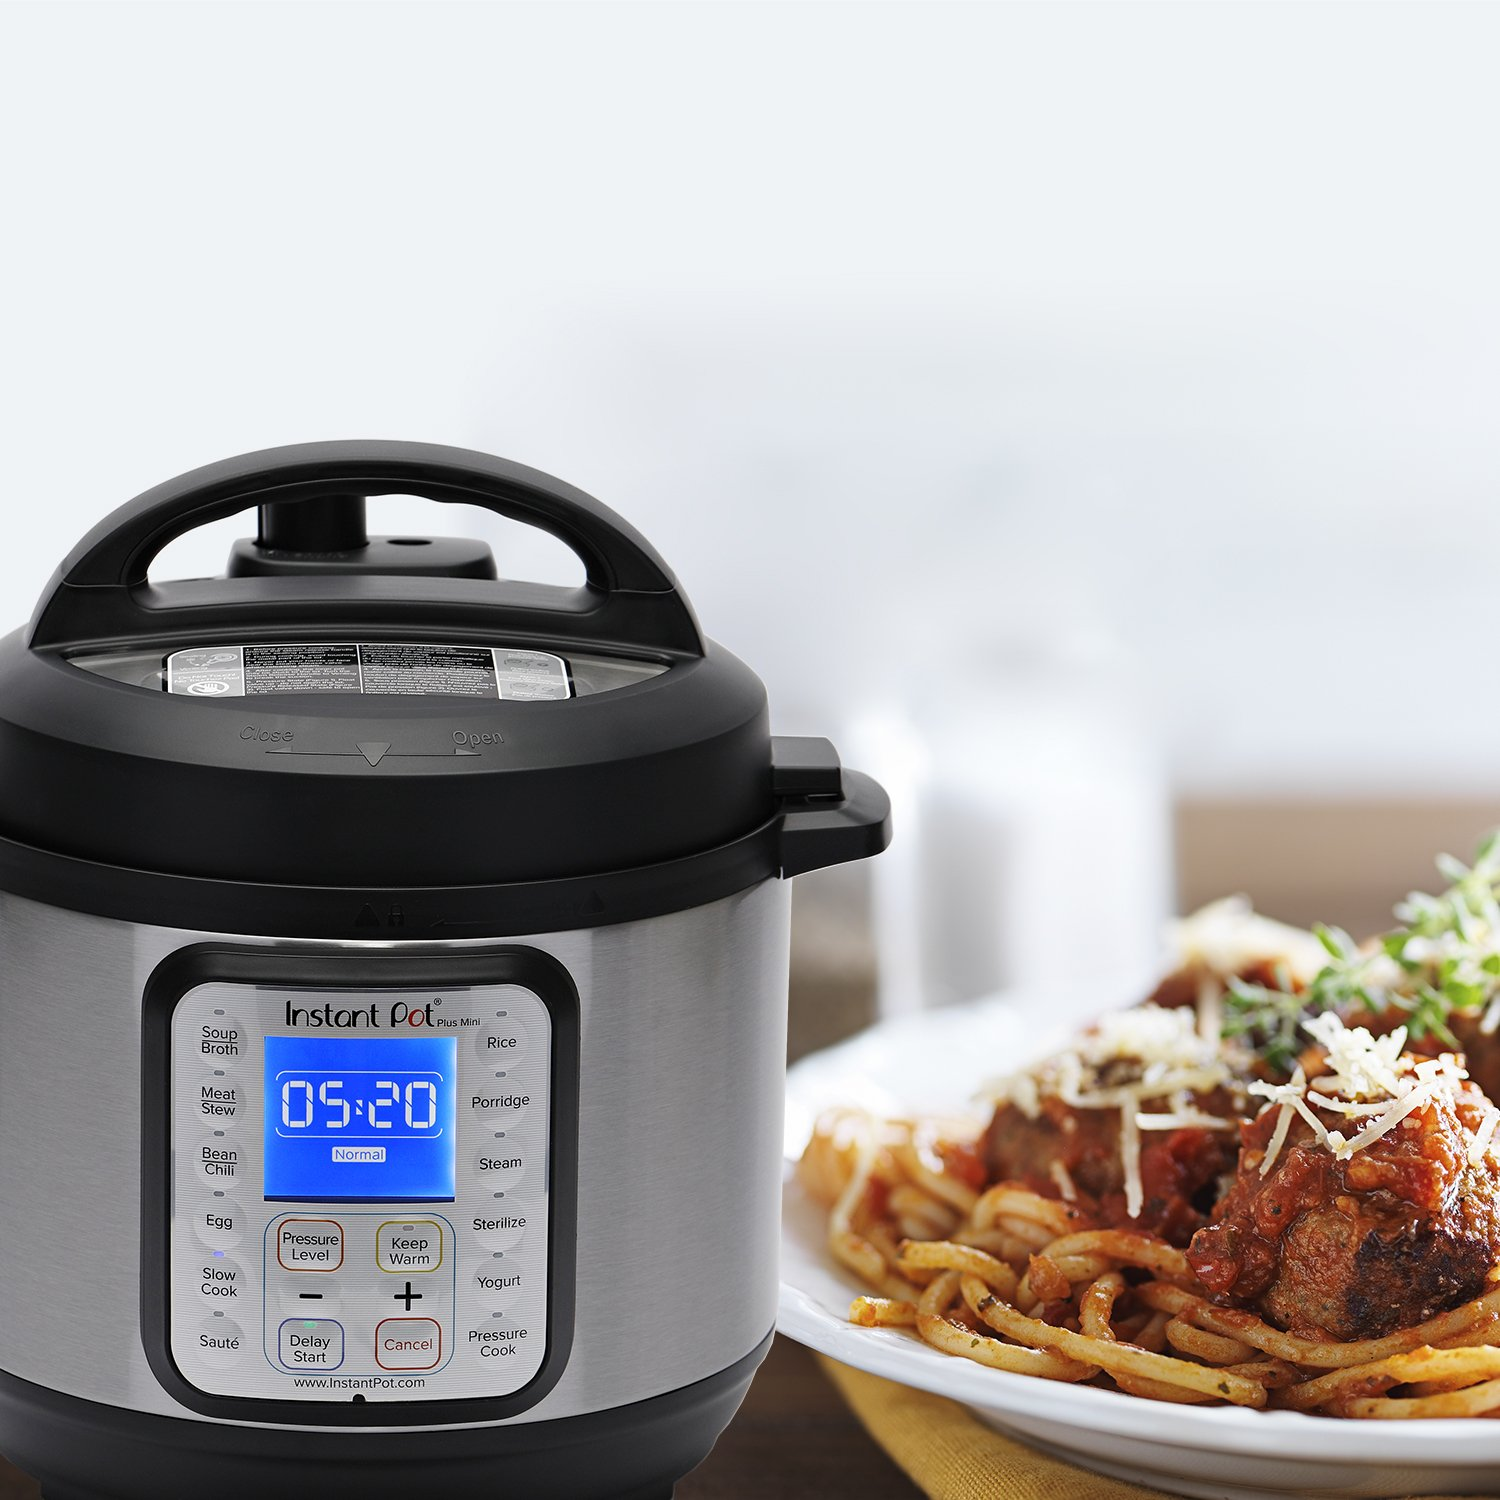 Instant Pot DUO Plus 3 Qt 9-in-1 Multi- Use Programmable Pressure Cooker, Slow Cooker, Rice Cooker, Yogurt Maker, Egg Cooker, Sauté, Steamer, Warmer, and Sterilizer by Instant Pot (Image #9)